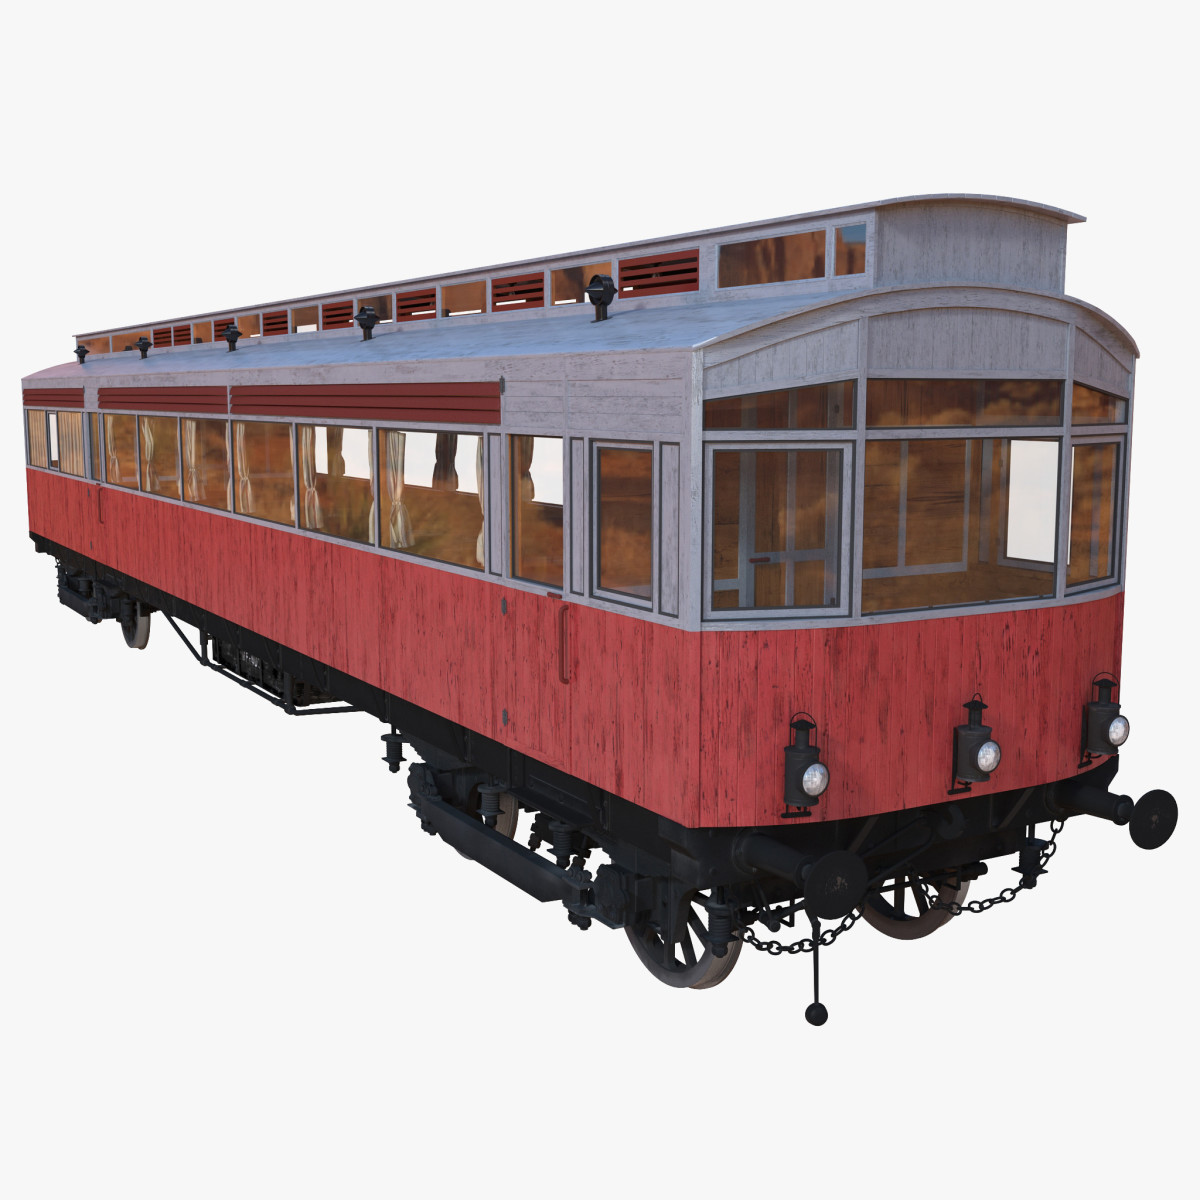 A computer-created image of the 1903 Petrol-electric Autocar currently in the course of being restored - see also ROPFAMR 24: Autocars, Autocoaches etc